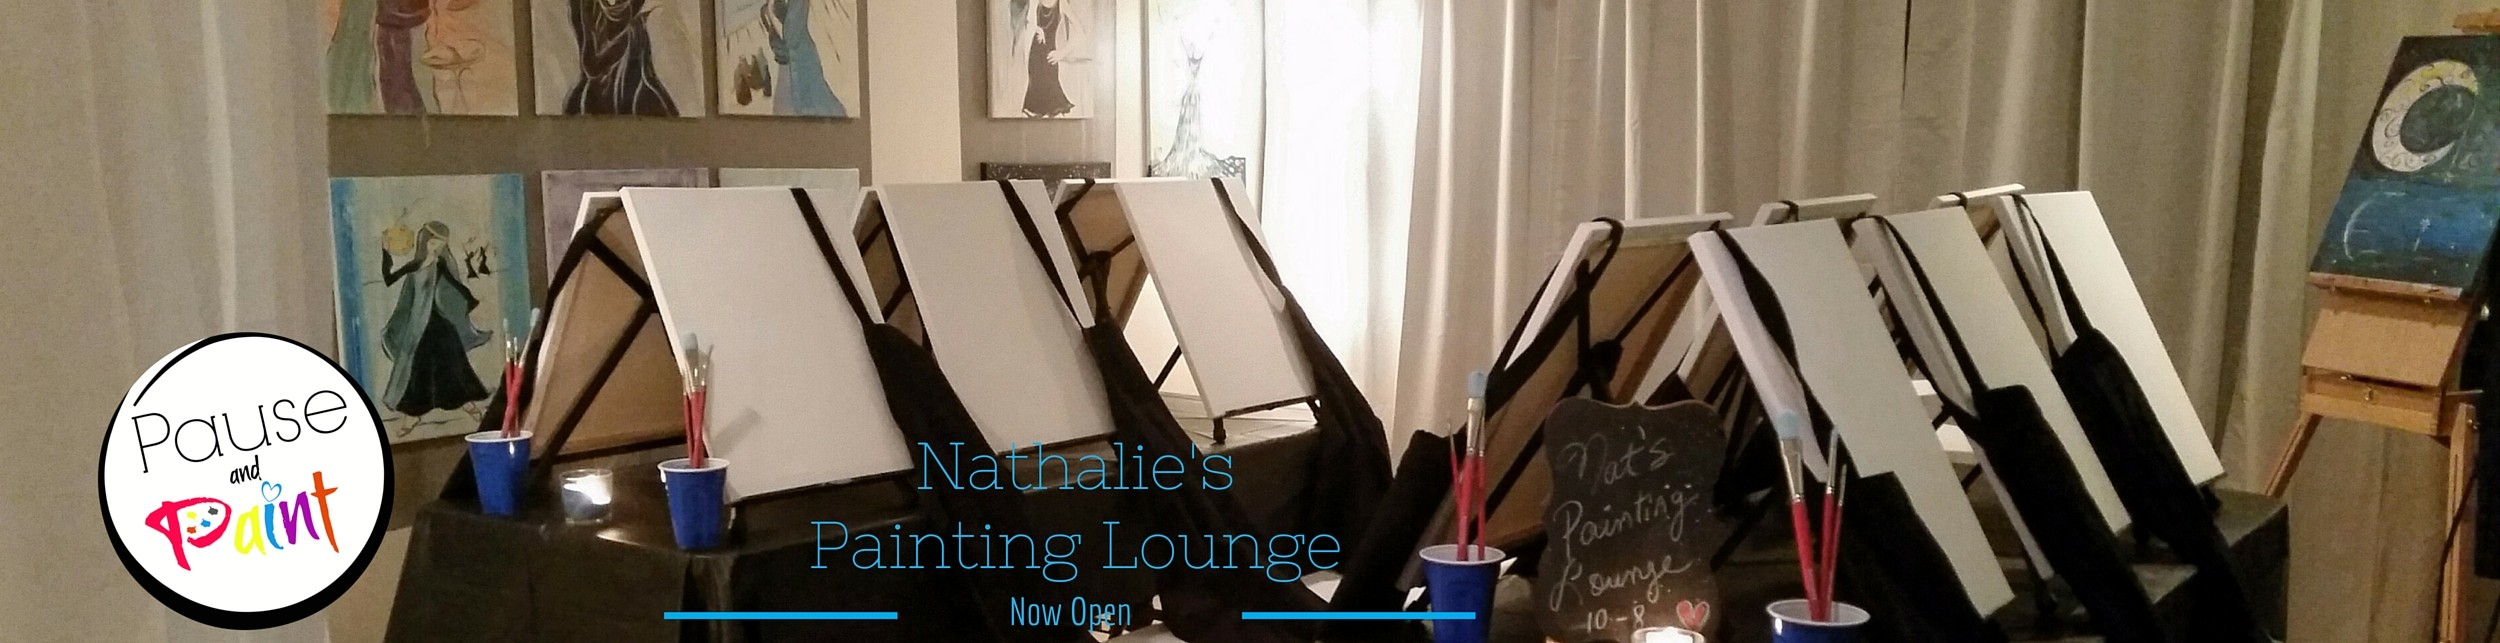 Nathalie's Painting Lounge